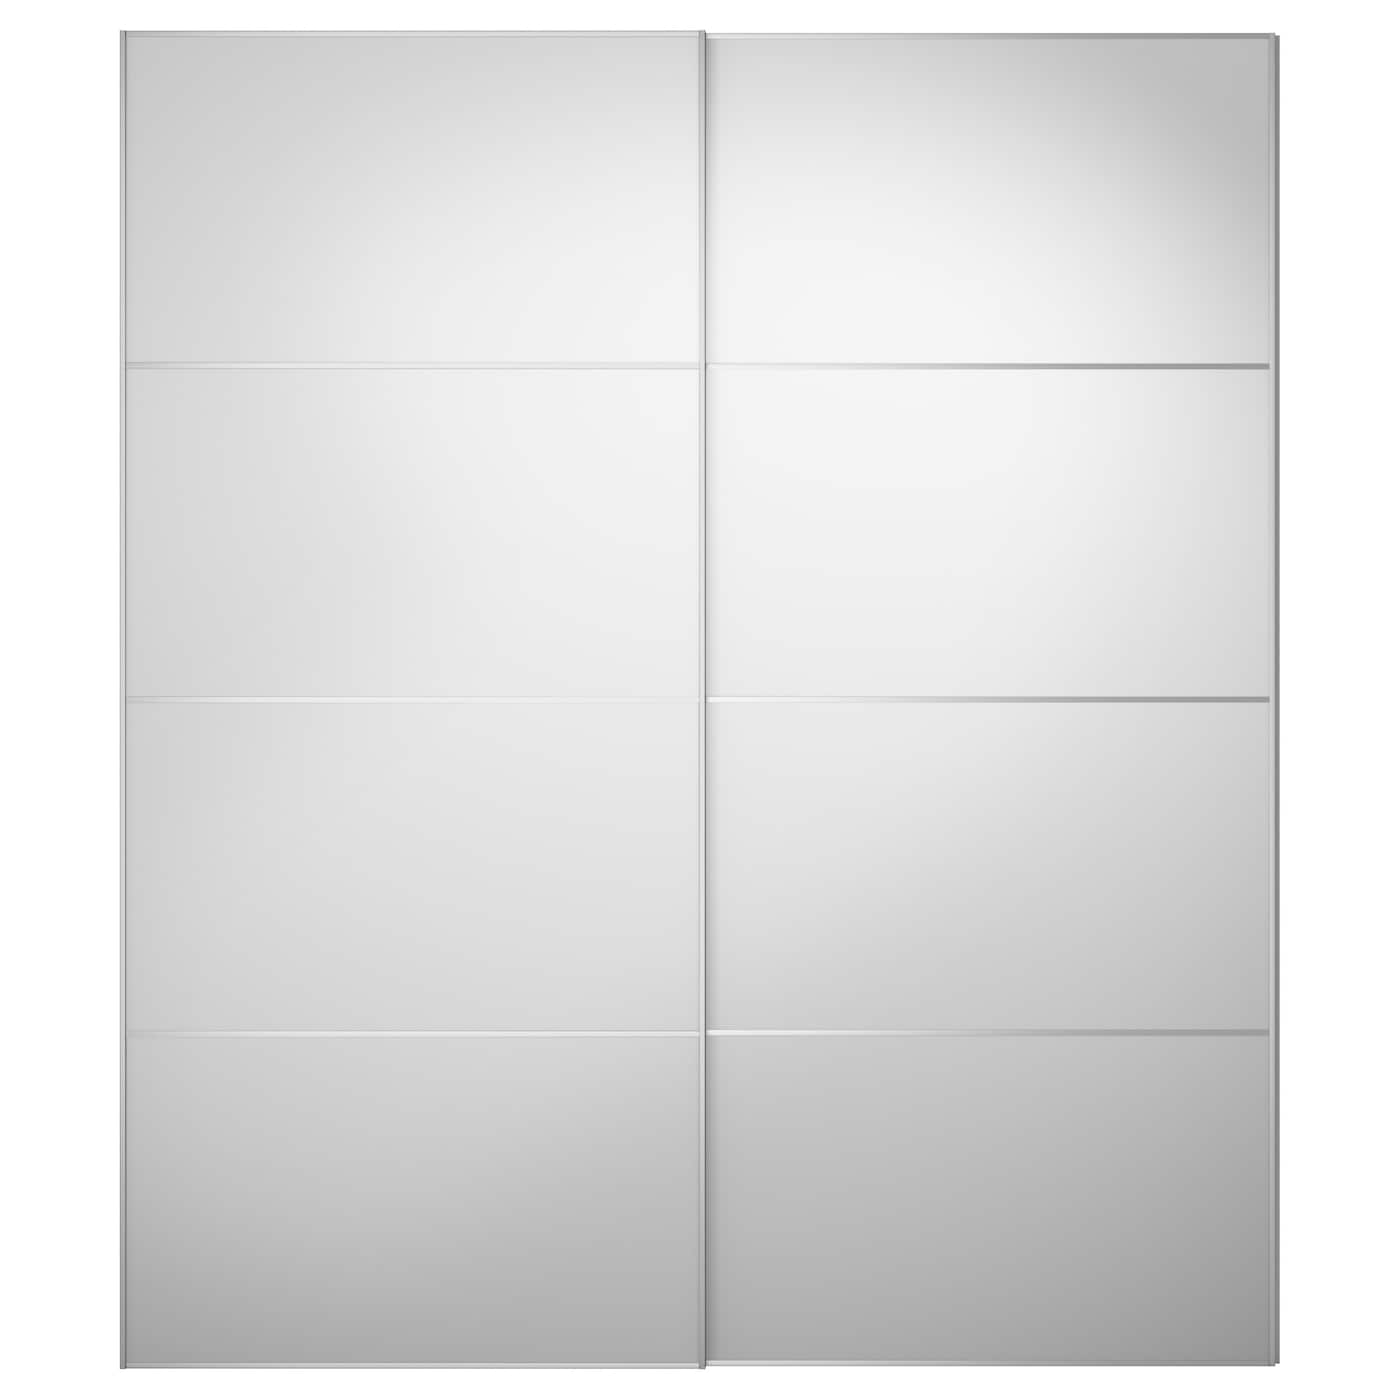 AULI Pair of sliding doors Mirror glass 200 x 236 cm - IKEA